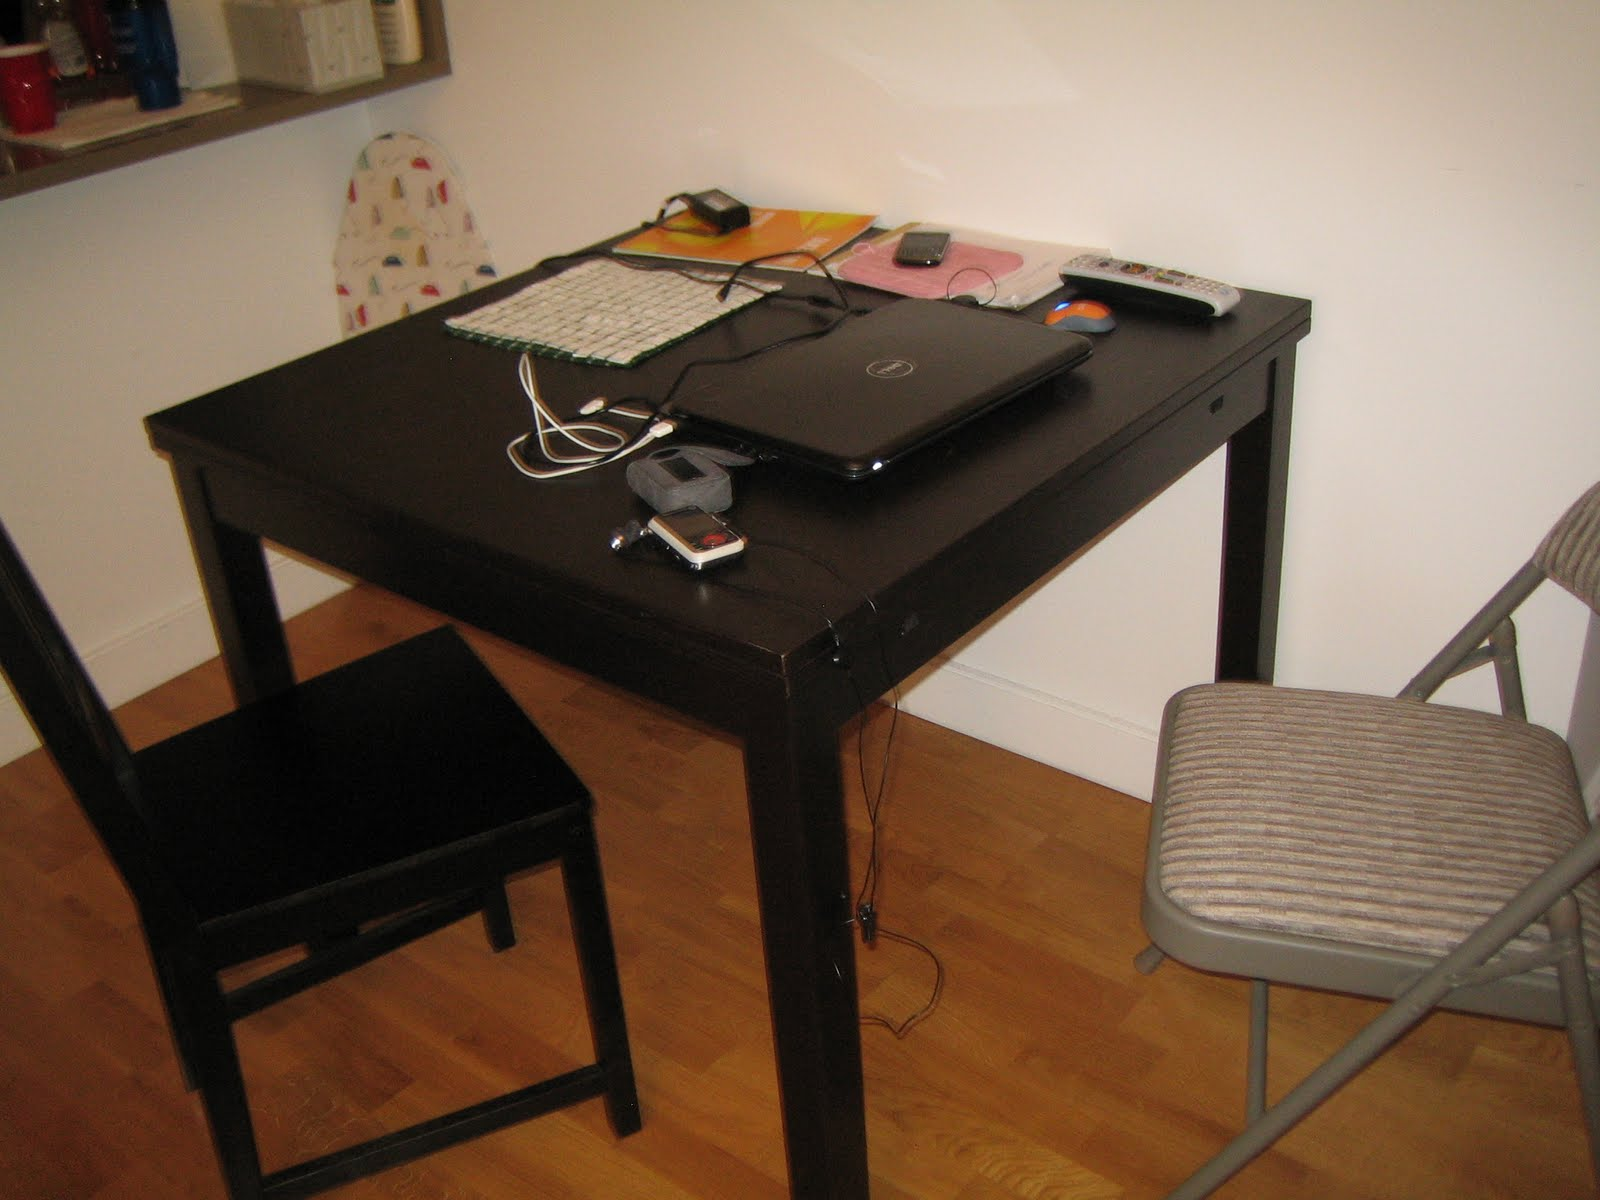 Roosevelt island listings moving sale ikea tv stand - Ikea table tv ...